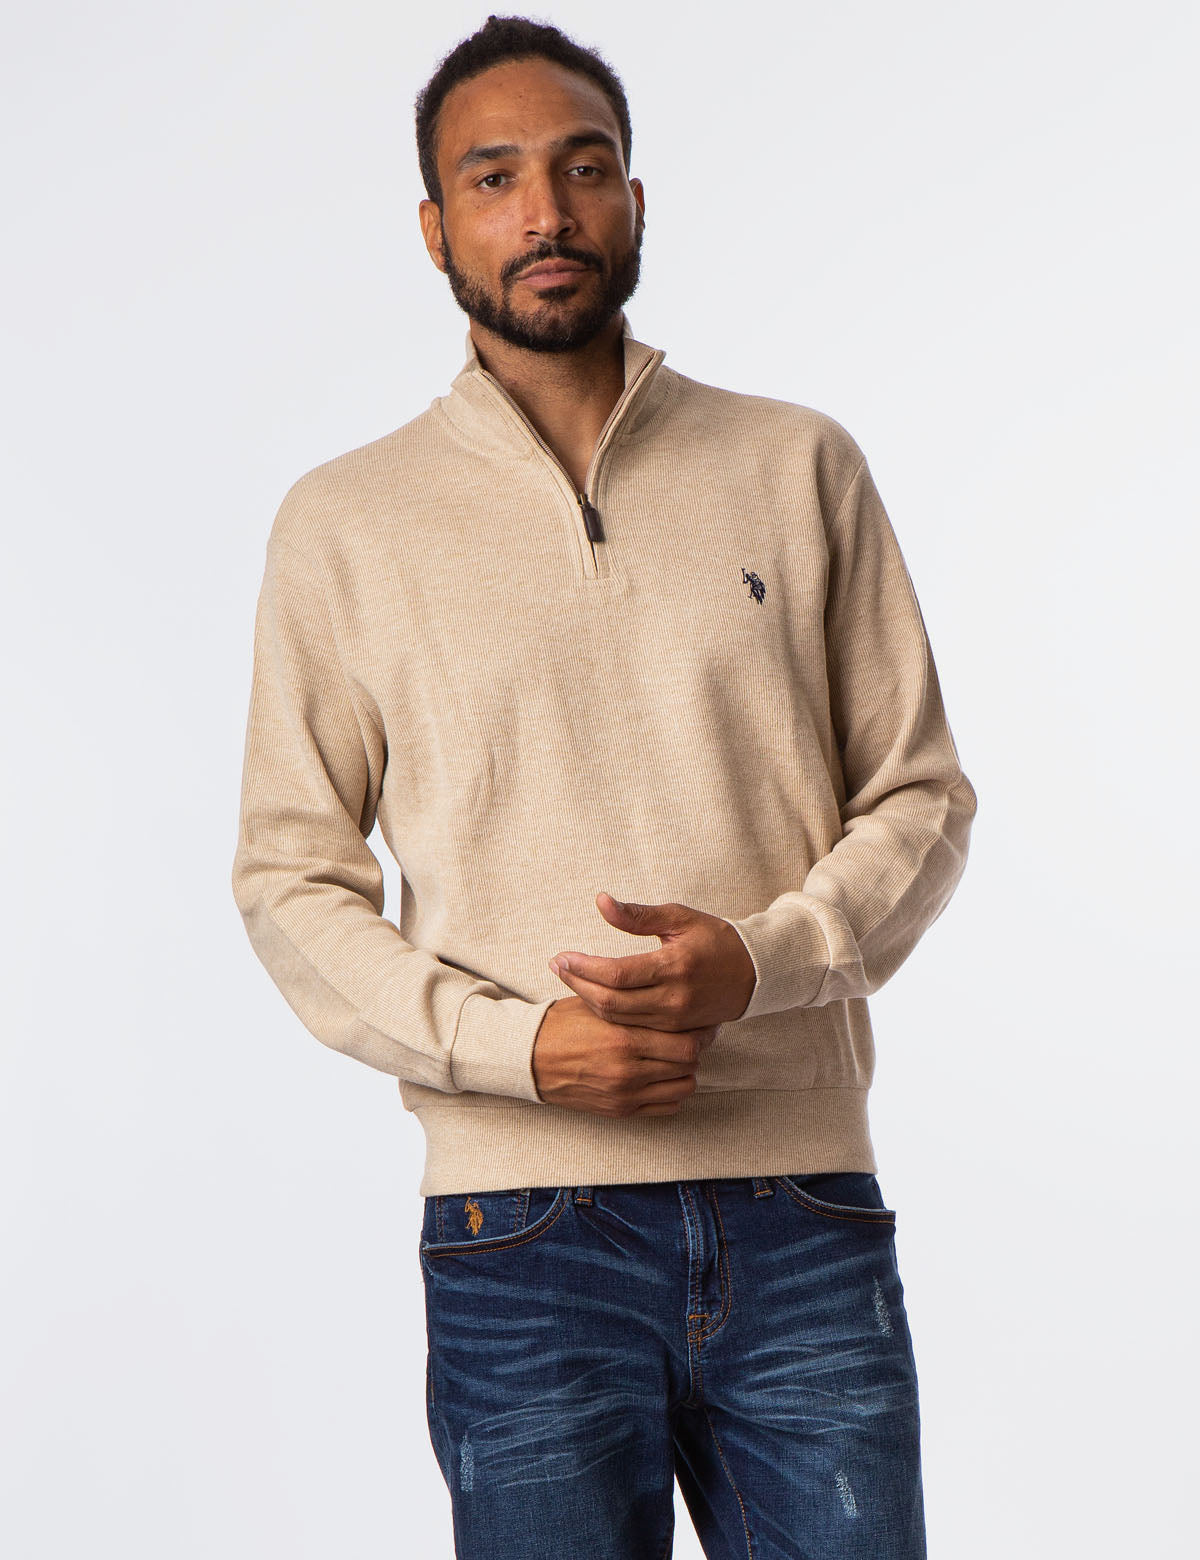 QUARTER ZIP SWEATSHIRT - U.S. Polo Assn.